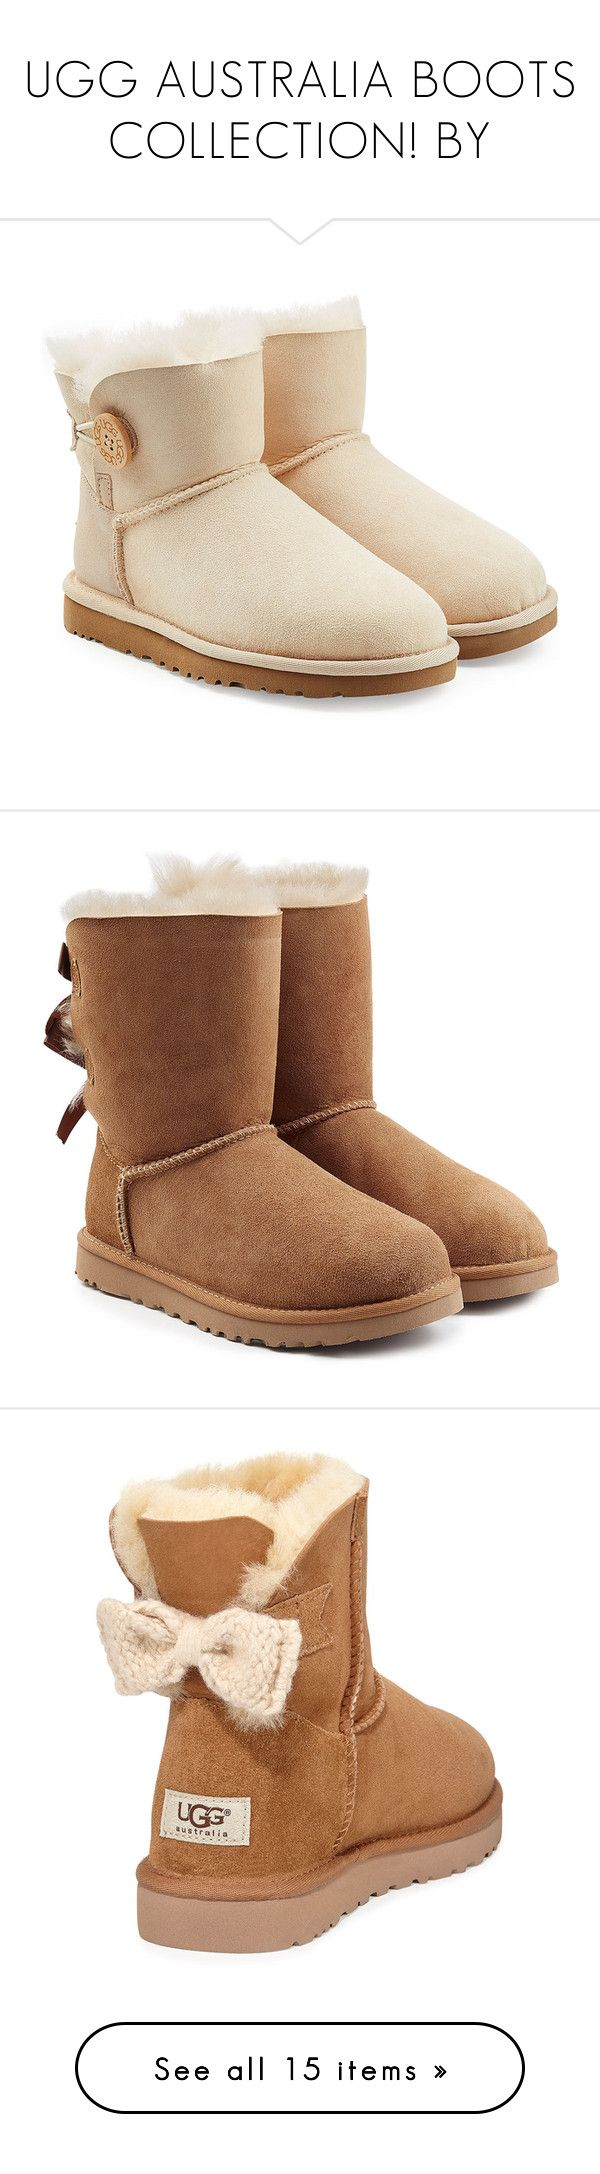 """""""UGG AUSTRALIA BOOTS COLLECTION! BY"""" by itgirlcarlota ❤ liked on Polyvore featuring uggboots, shoes, boots, ugg, botas, rose, knit boots, rose boots, sheep shoes and ugg australia"""